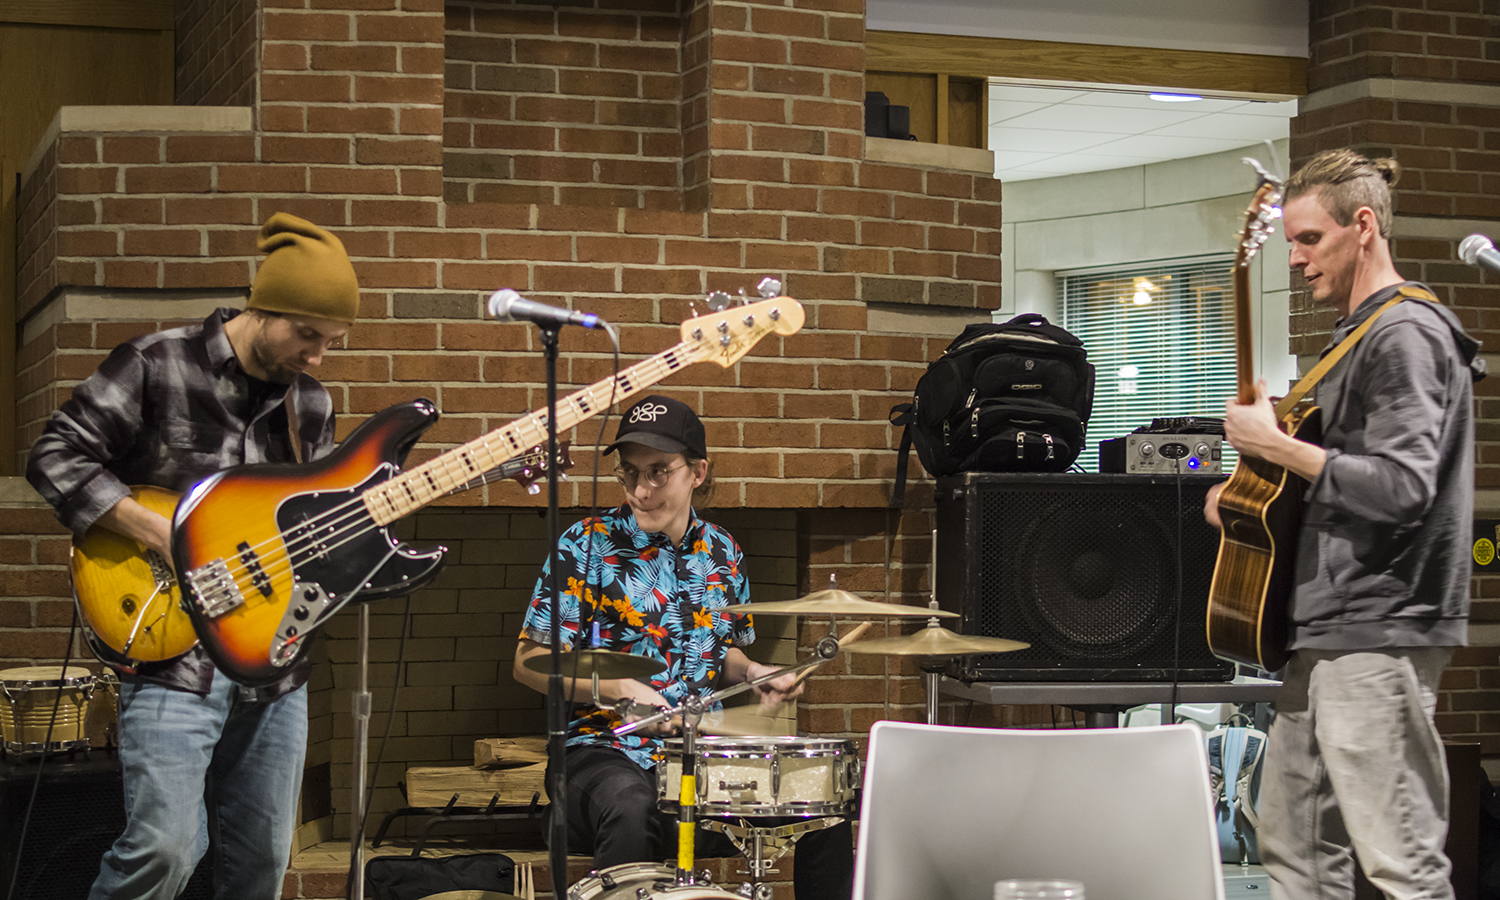 "Reggae band ""Qwister"", from Jamestown, N.Y., performs live in Saga. The live braodcast on WHWS 105.7 FM was hosted by students Austin Kennie '19 and Jordan Raivel '19."